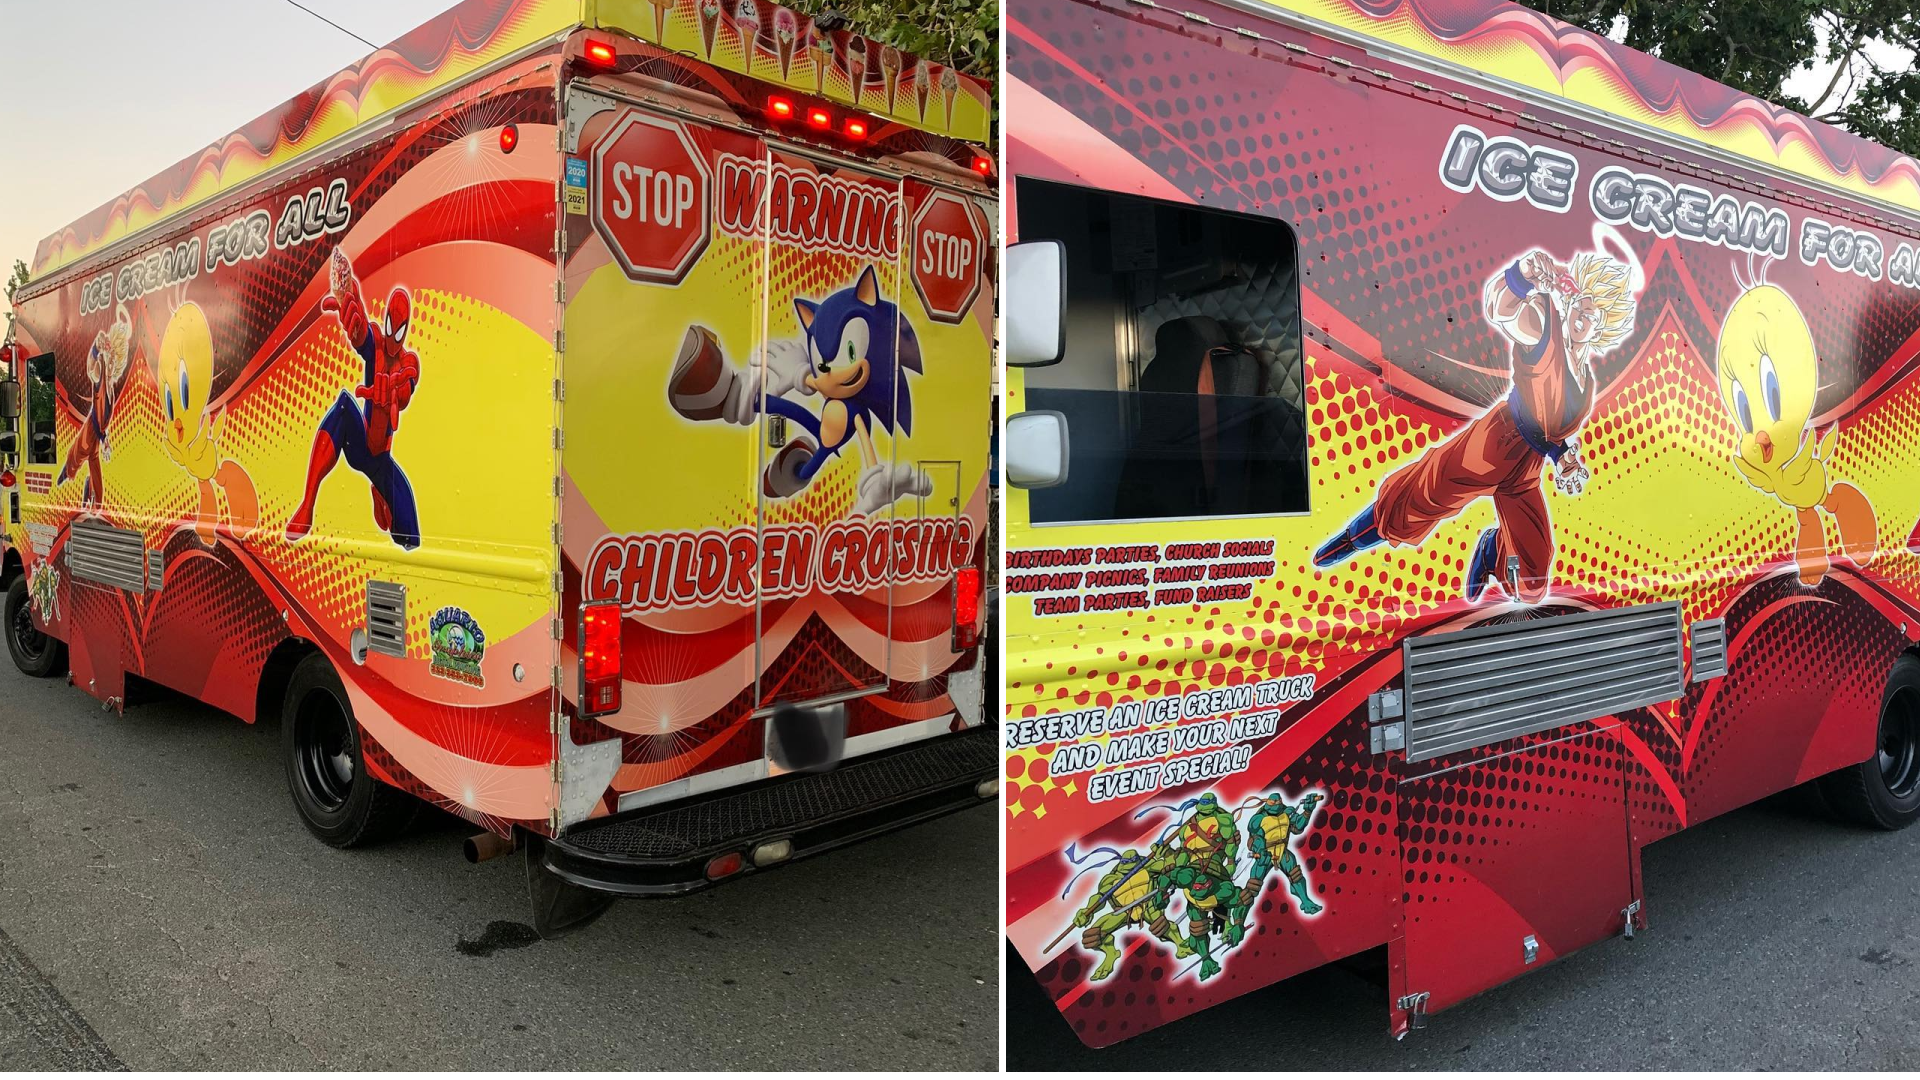 The Pittsburg Police Department on July 3, 2021 released these photos of an ice cream truck in which they say illegal fireworks were found.